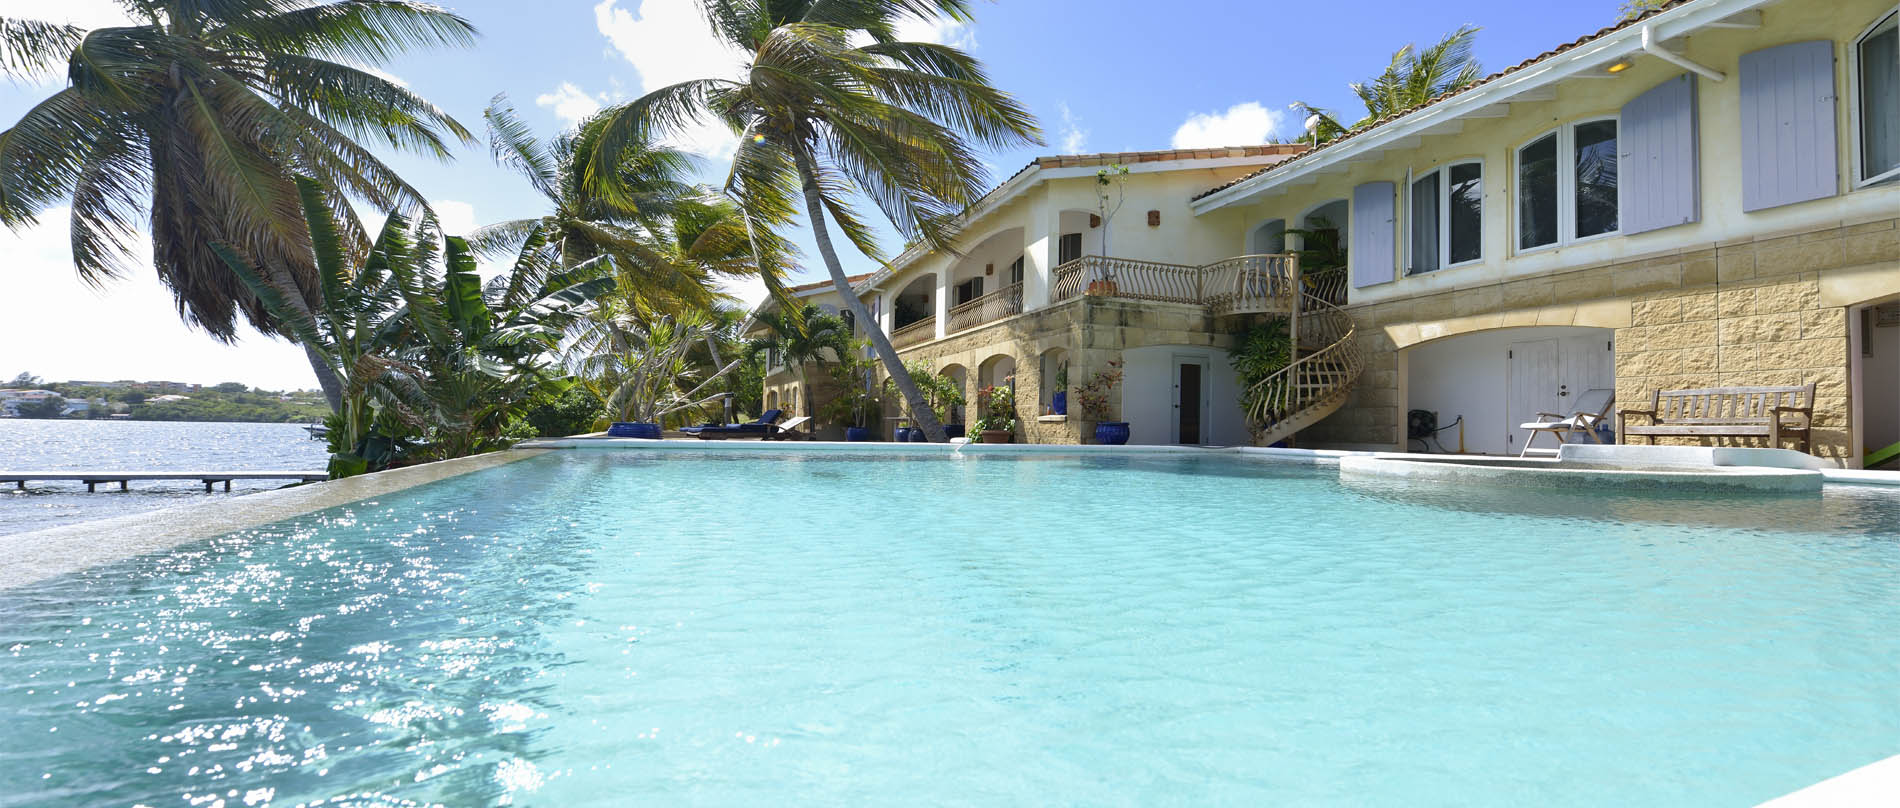 Islander Villa - For Sale